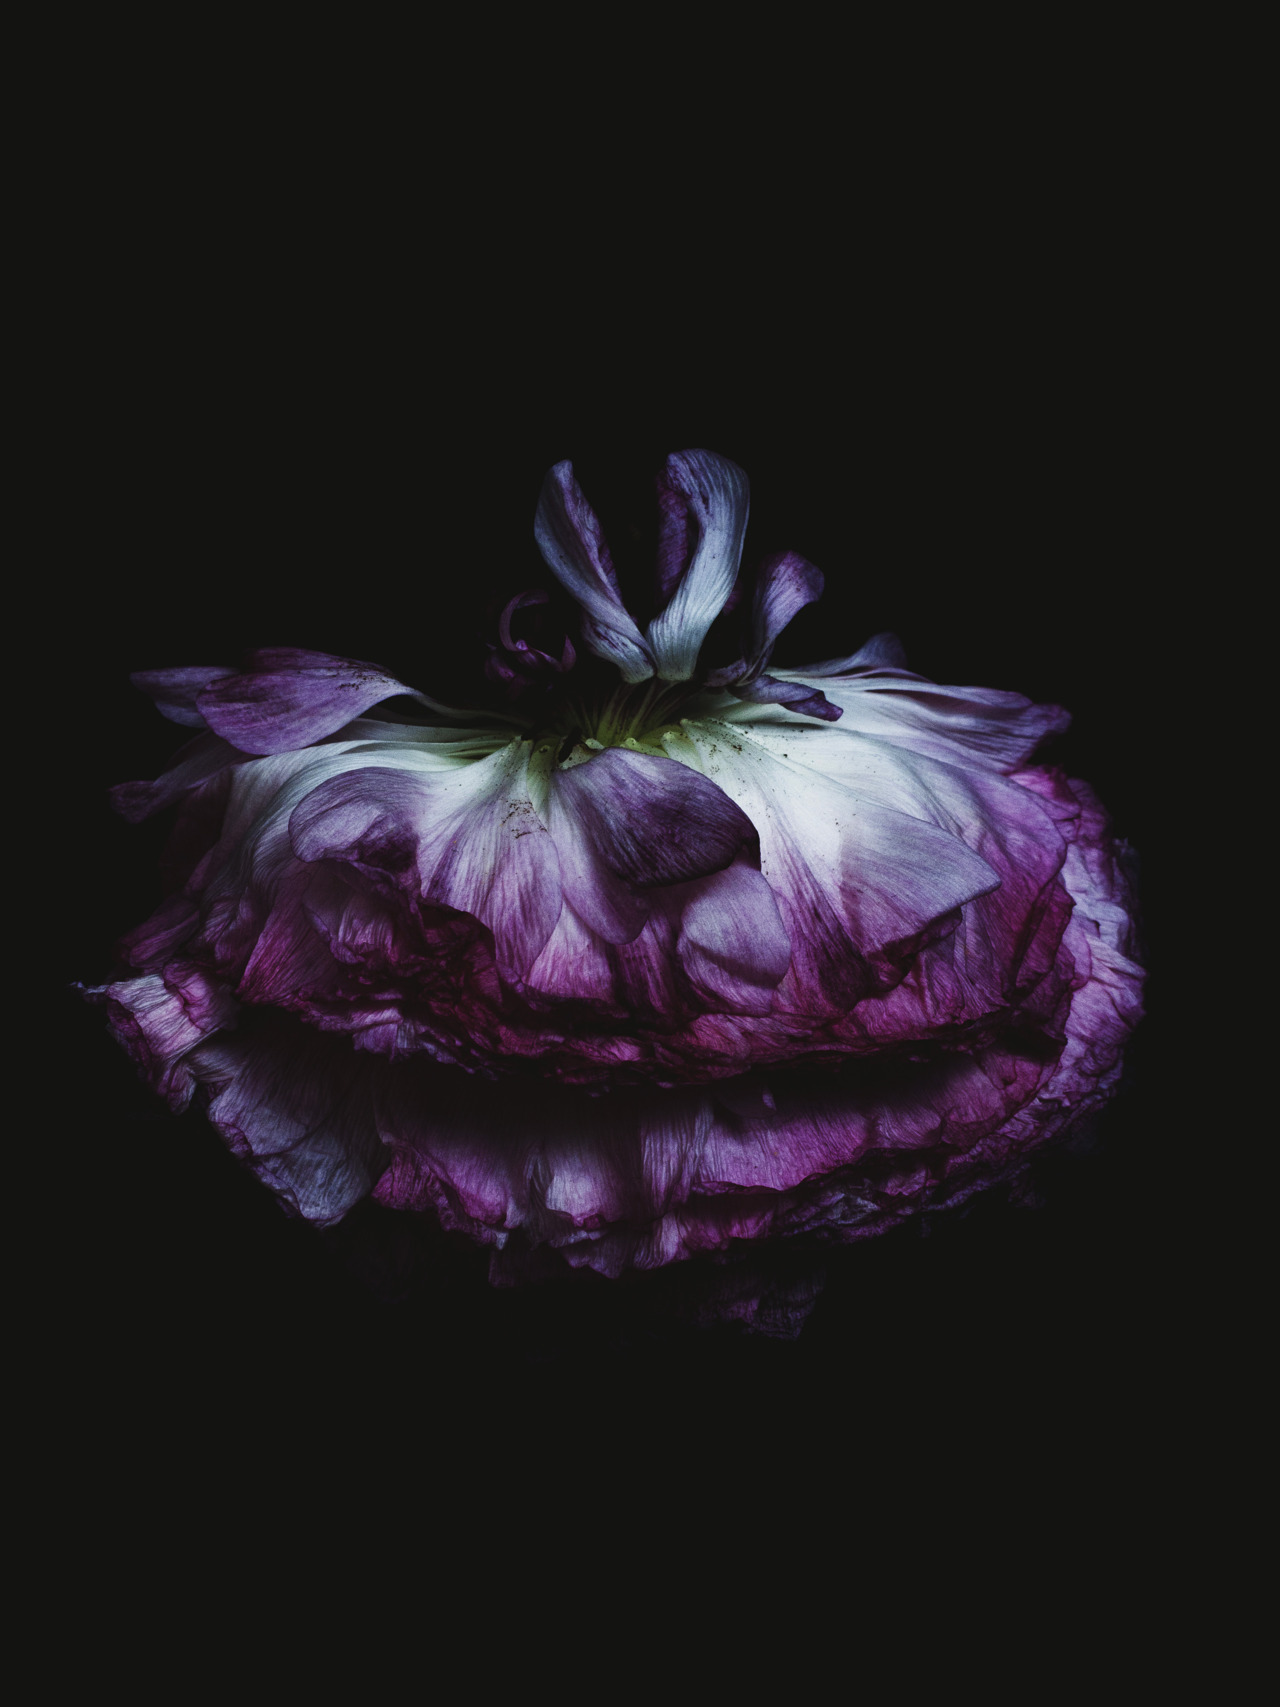 Decaying flower was shot by Billy Kidd. (do you see the Cheshire cat?)